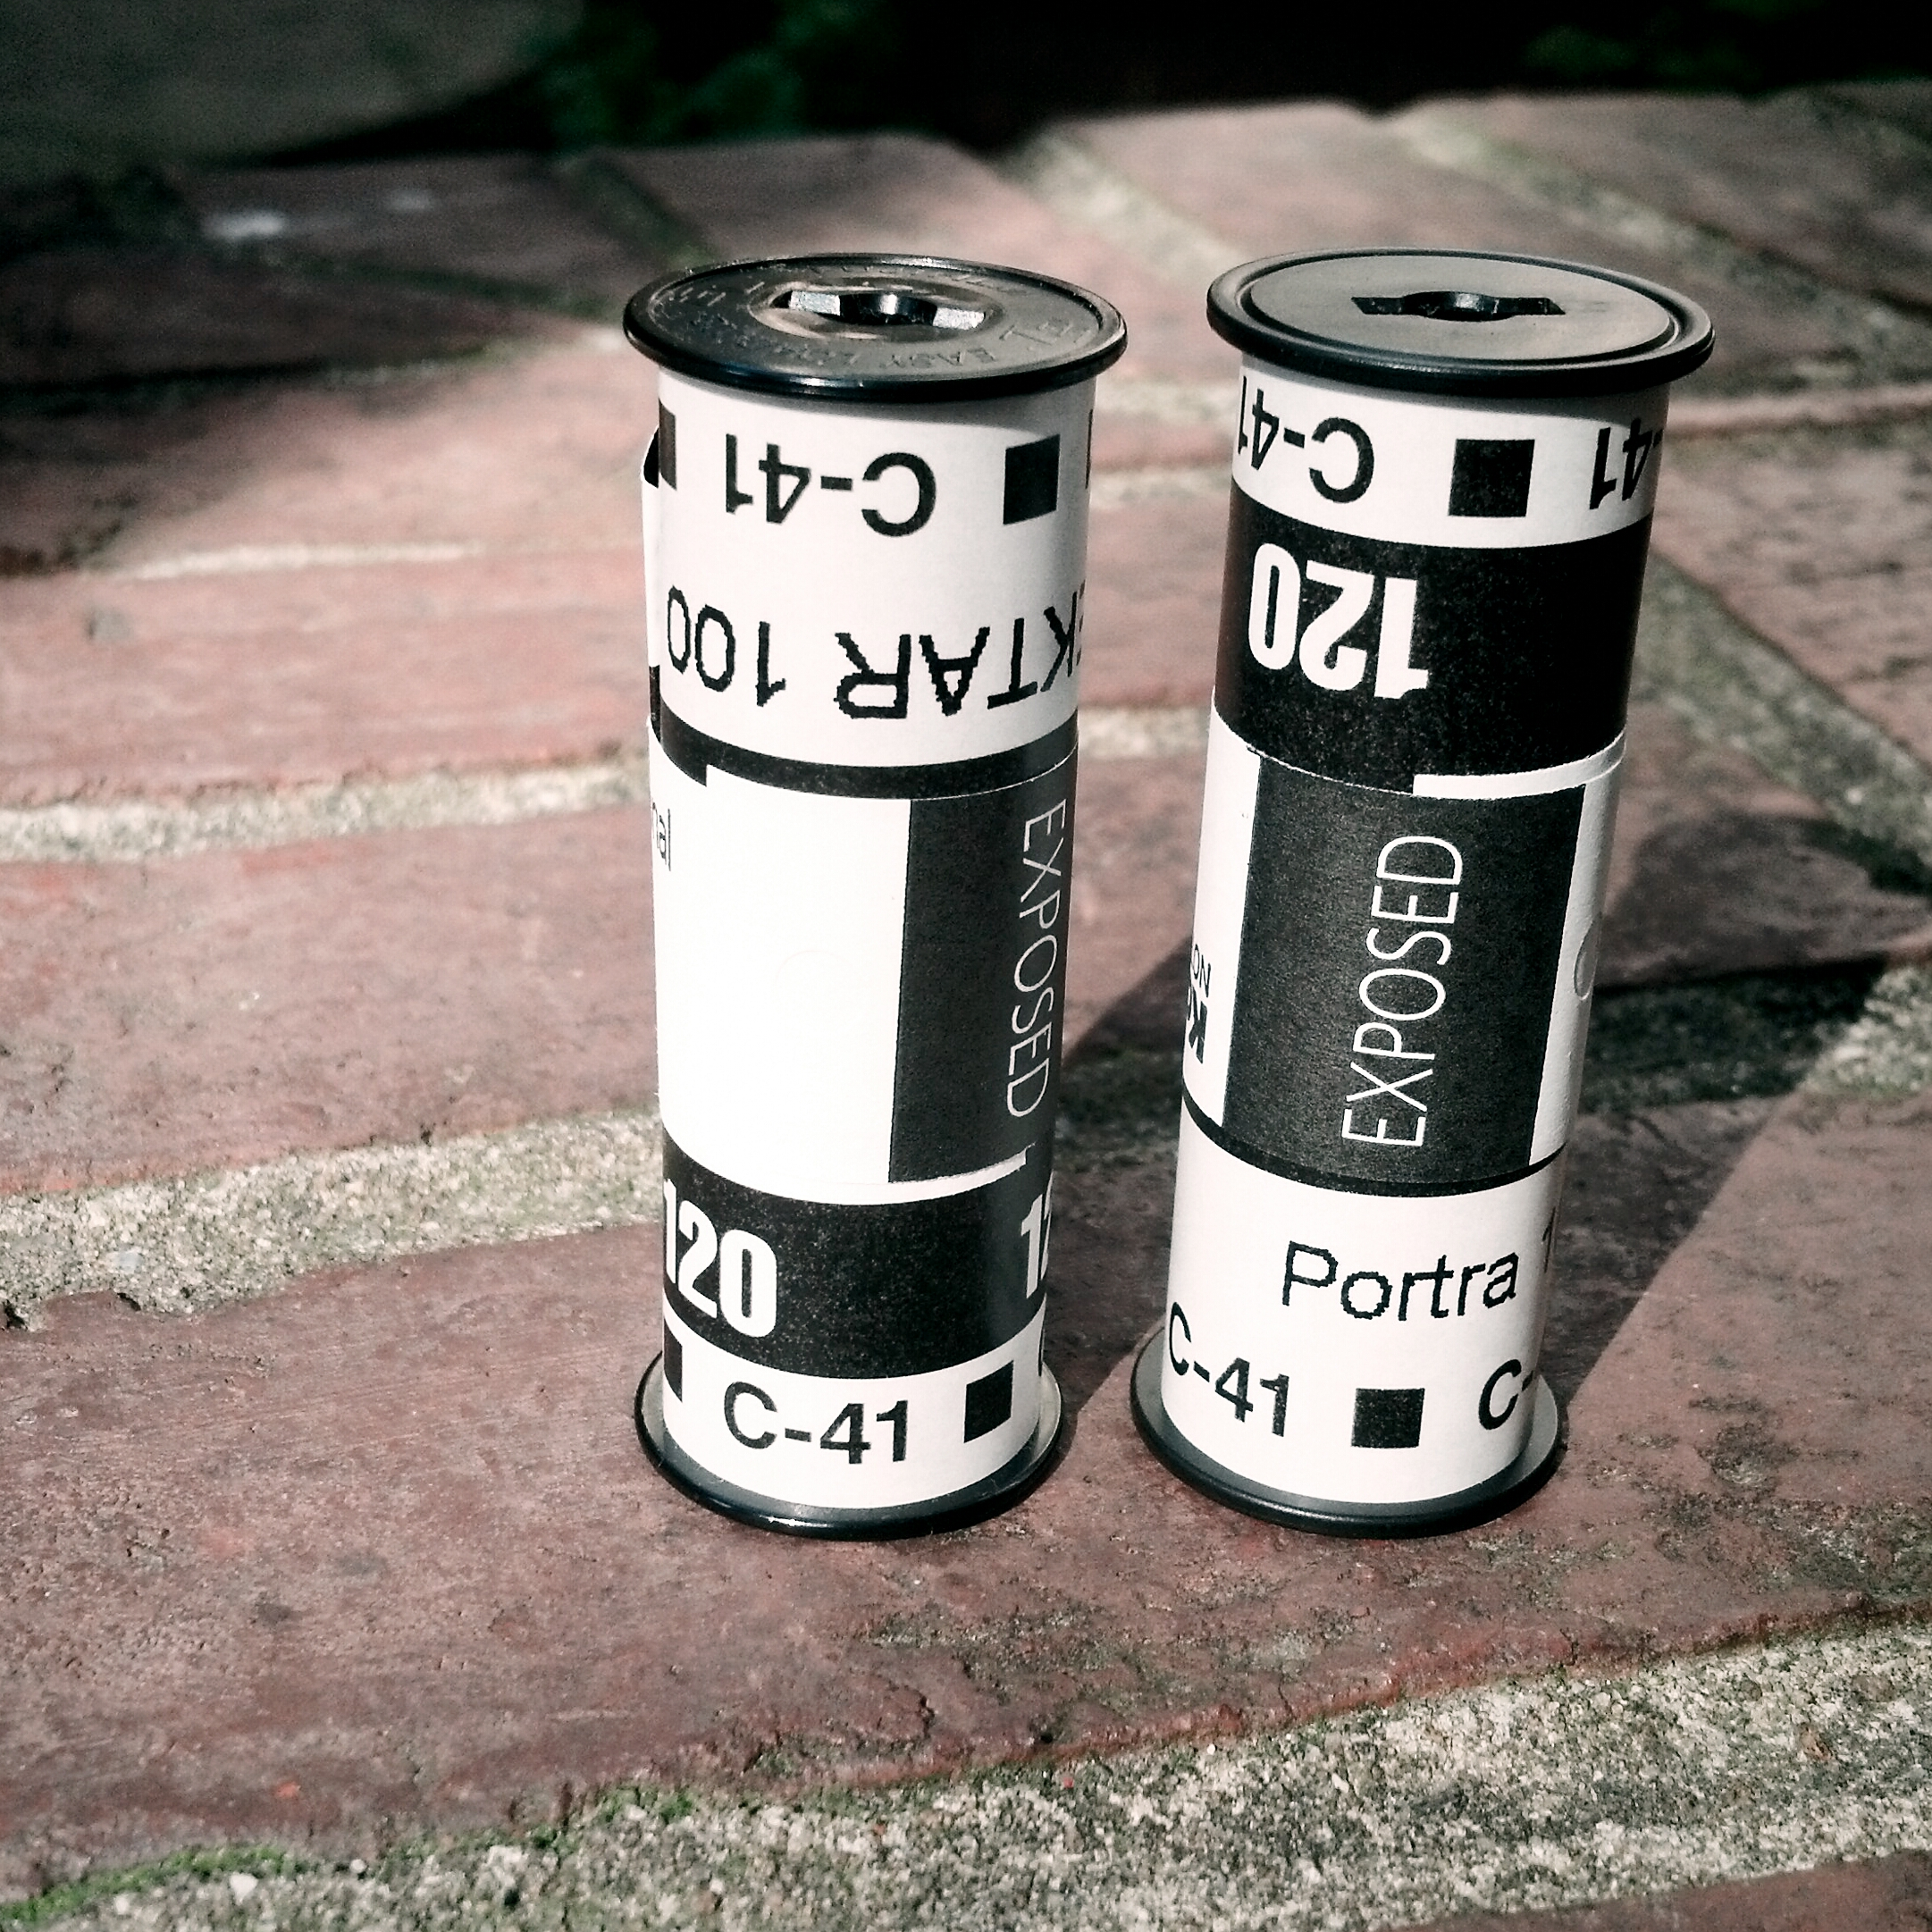 Two rolls of 120 film I shot yesterday at a photography meetup event in Knoxville: Kodak Ektar and Kodak Portra.  Also called  medium format  film, 120 has been around for over a century and is still popular among photography enthusiasts. 120 film frames can be several times larger than 35mm negatives, and due to the larger size it yields detailed and beautiful scans.